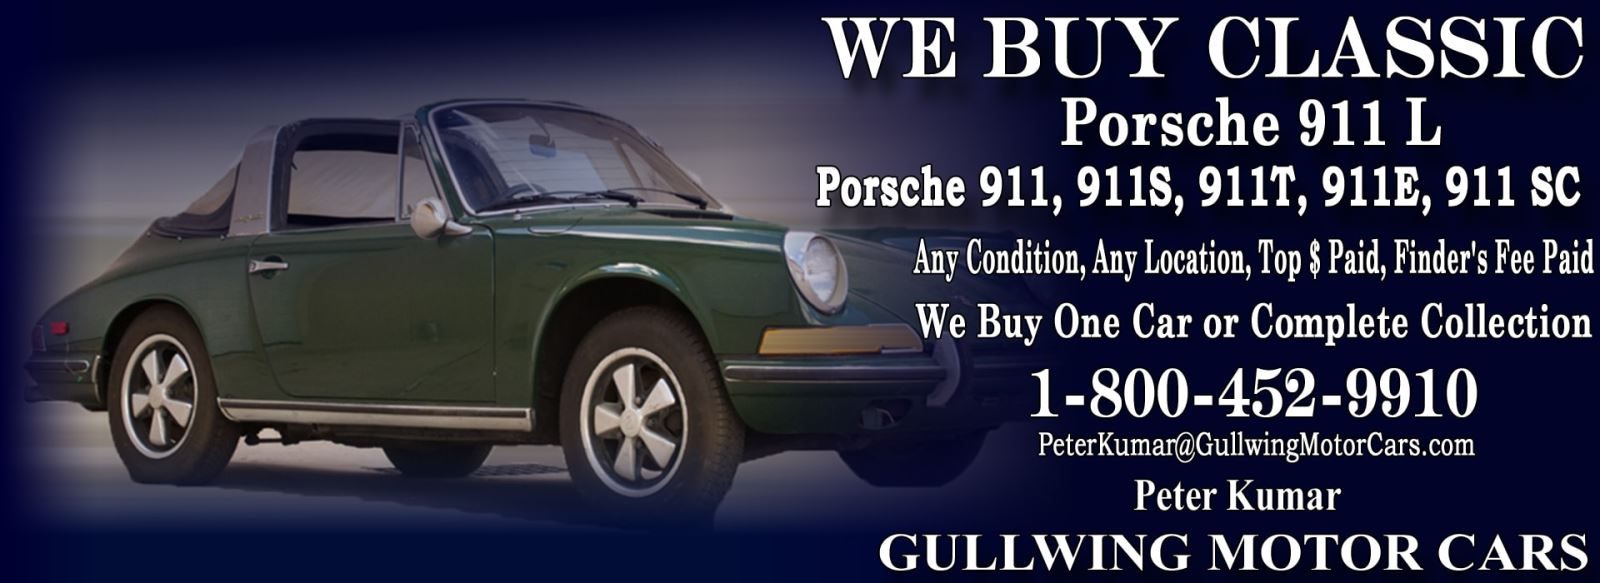 Classic Porsche 911L for sale, we buy vintage Porsche 911L. Call Peter Kumar. Gullwing Motor